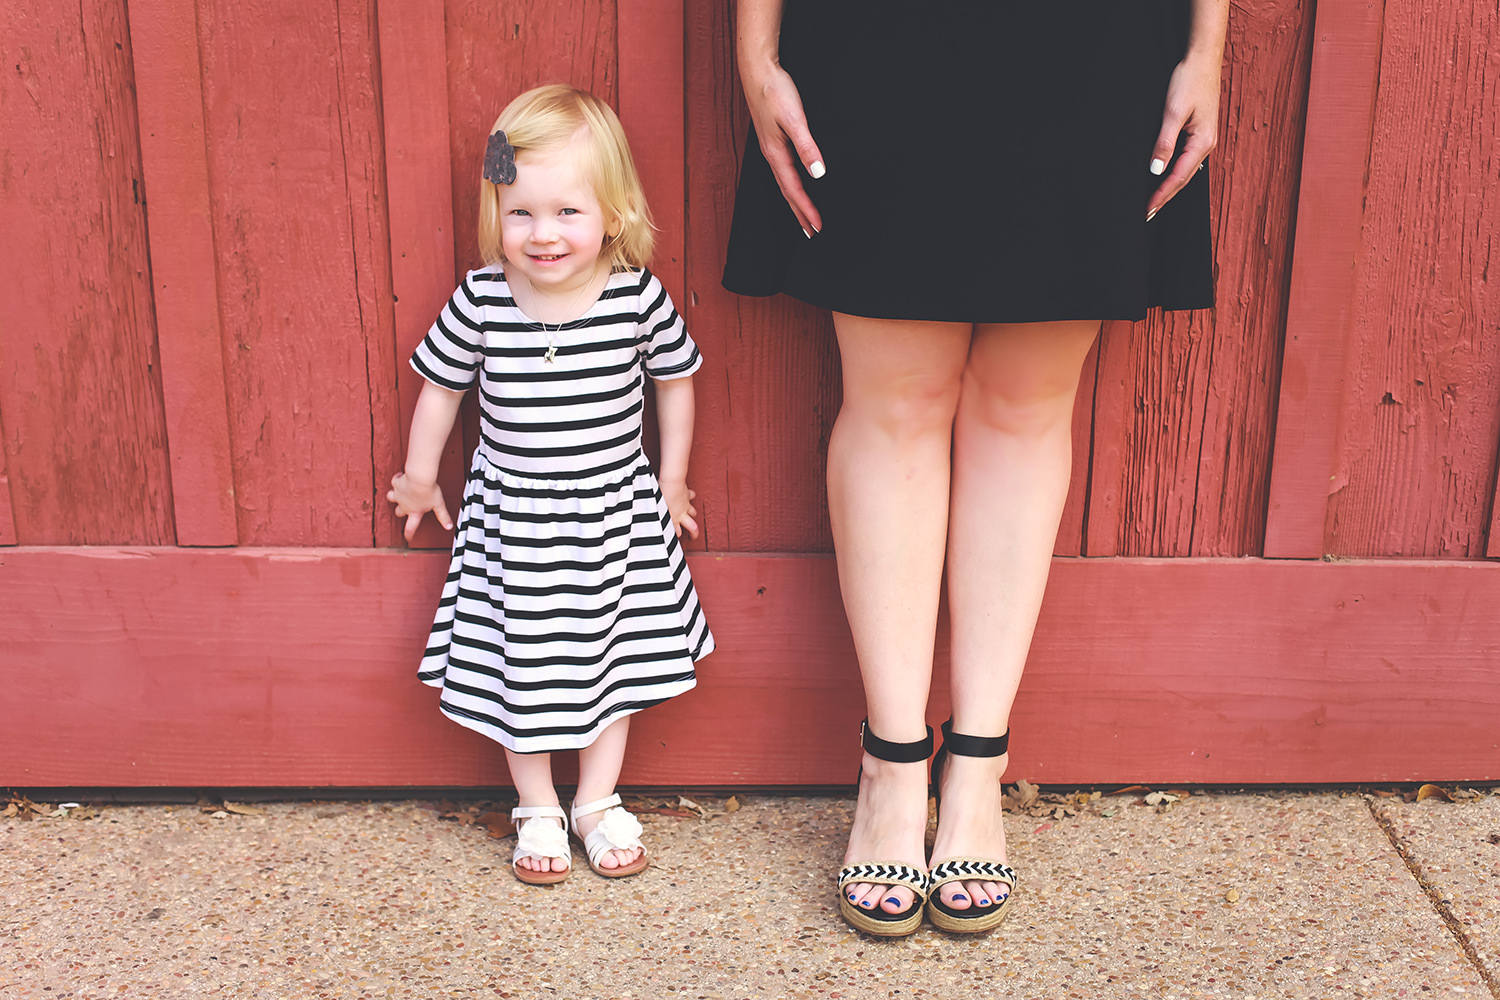 Looking for a great spring outfit? This black and white outfit is mommy and me wear at it's best! And those wedge sandals? Adorable!